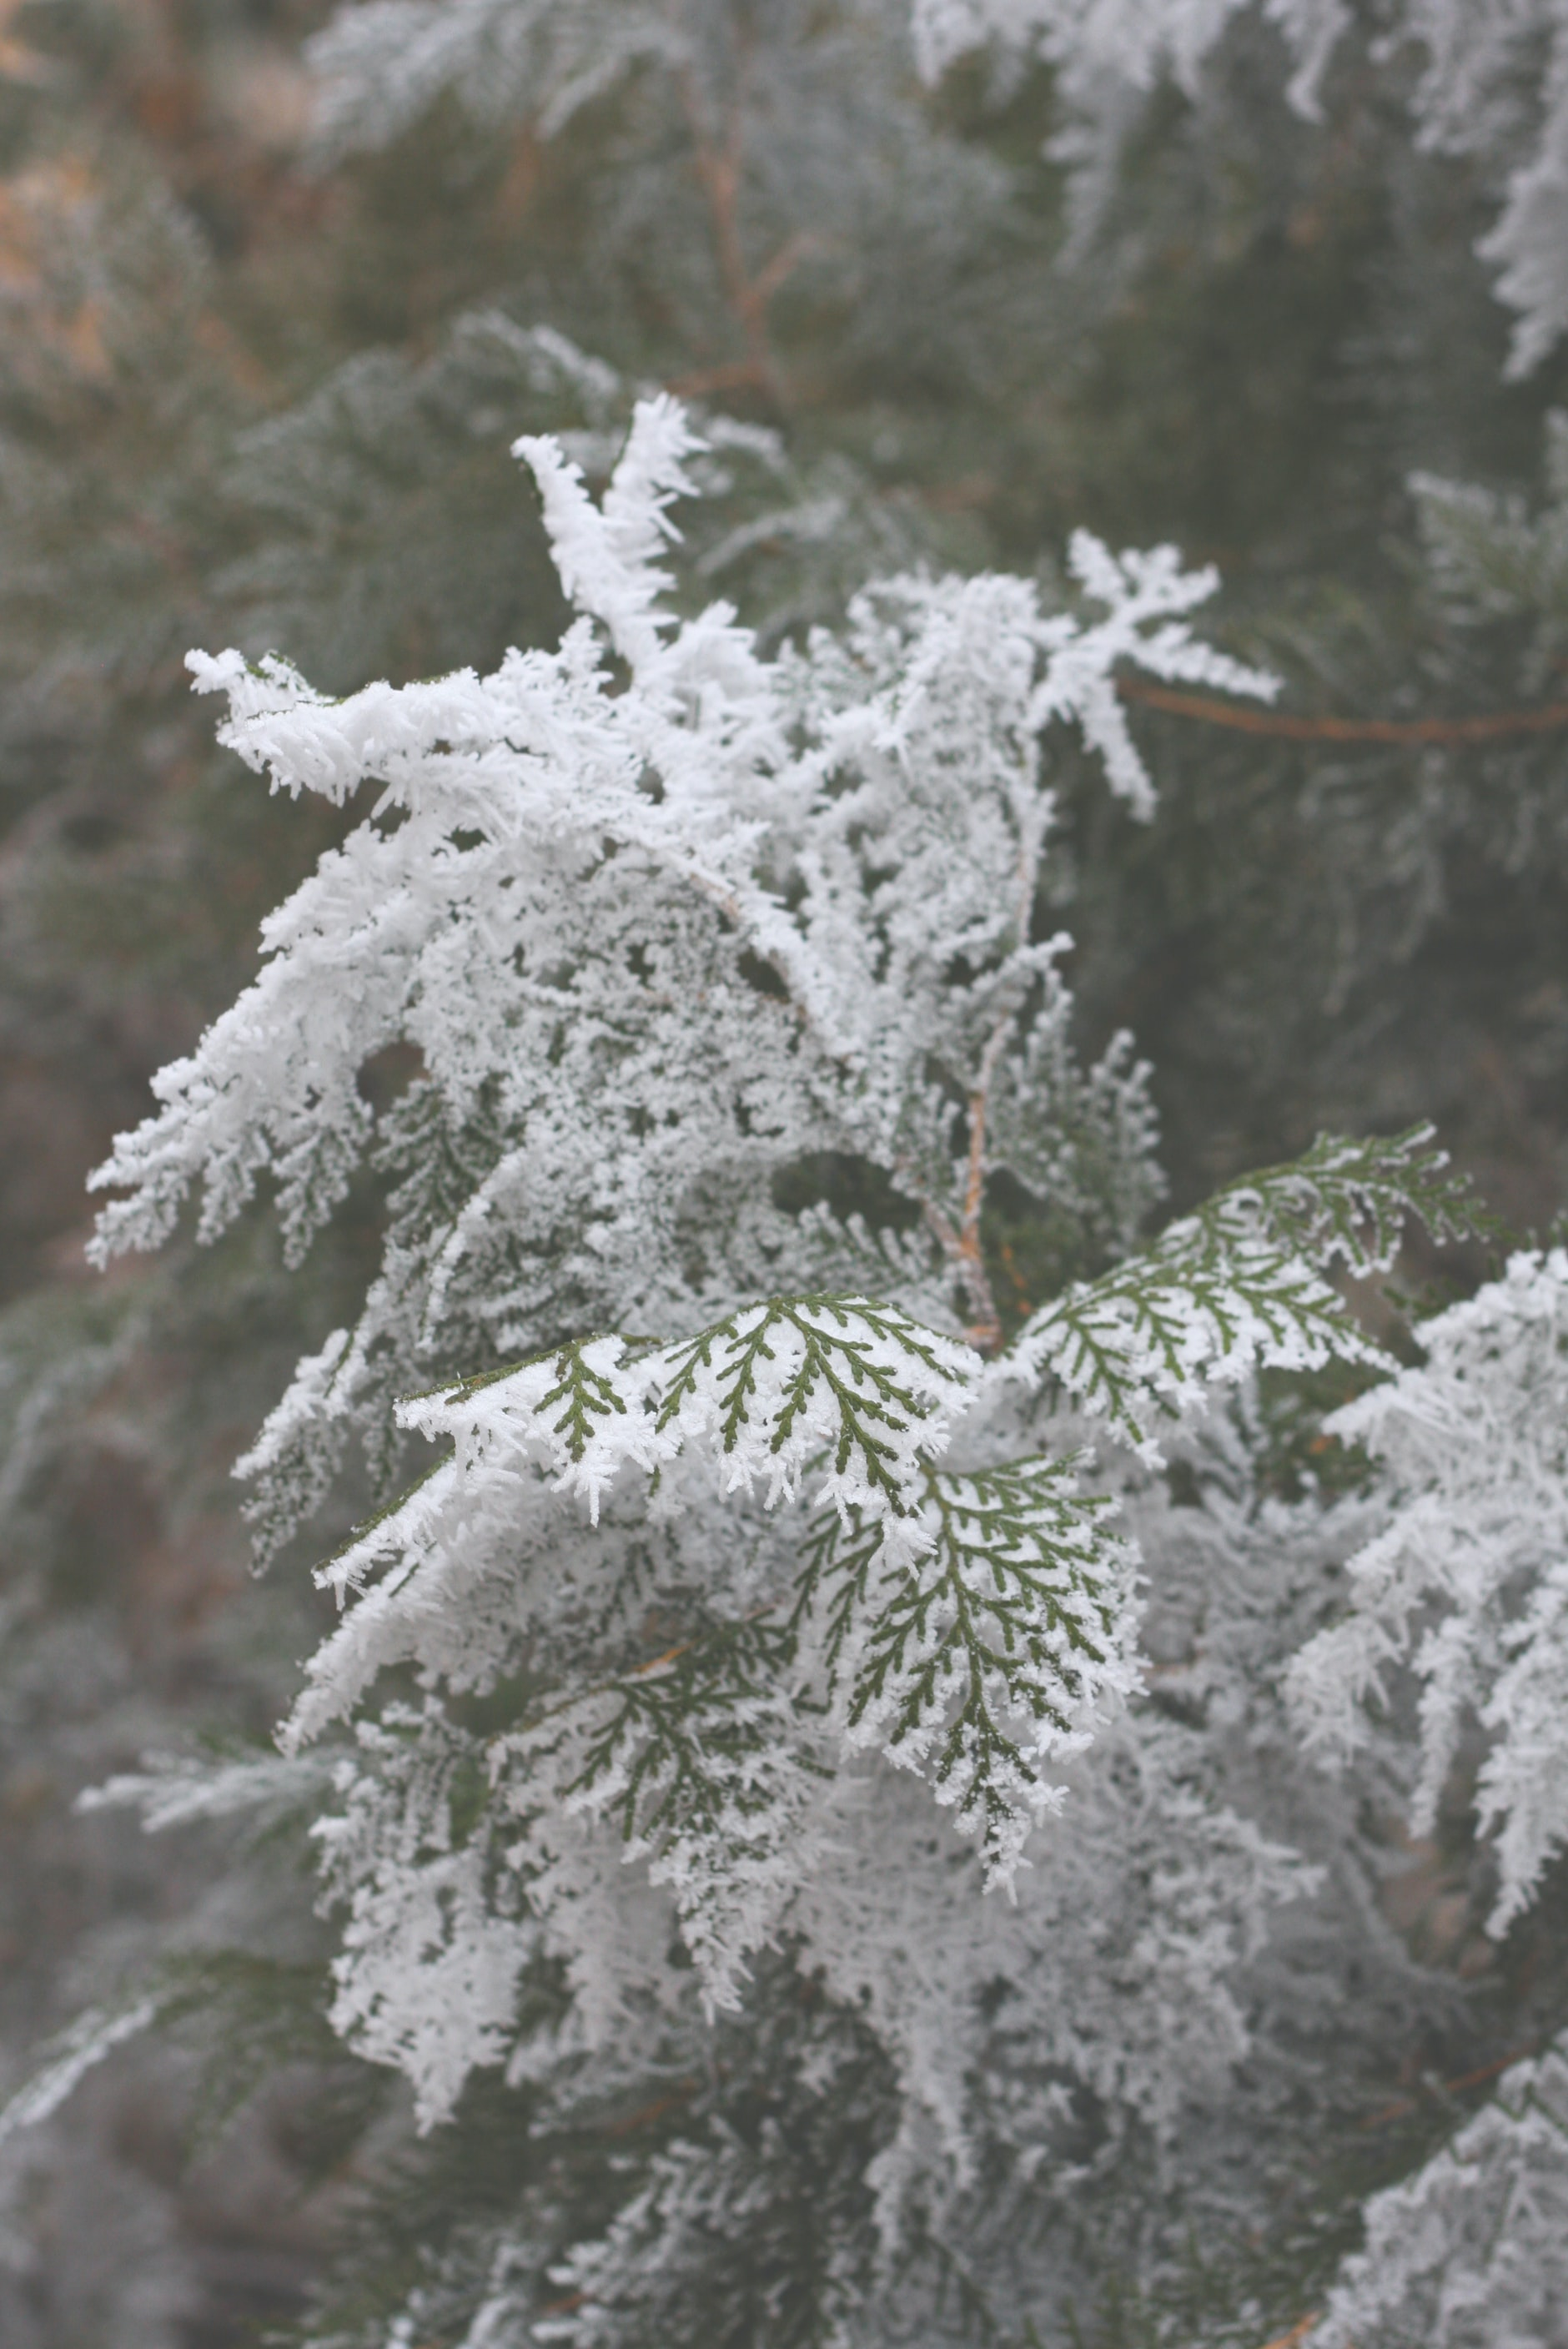 Close up of a snow covered fir leaf